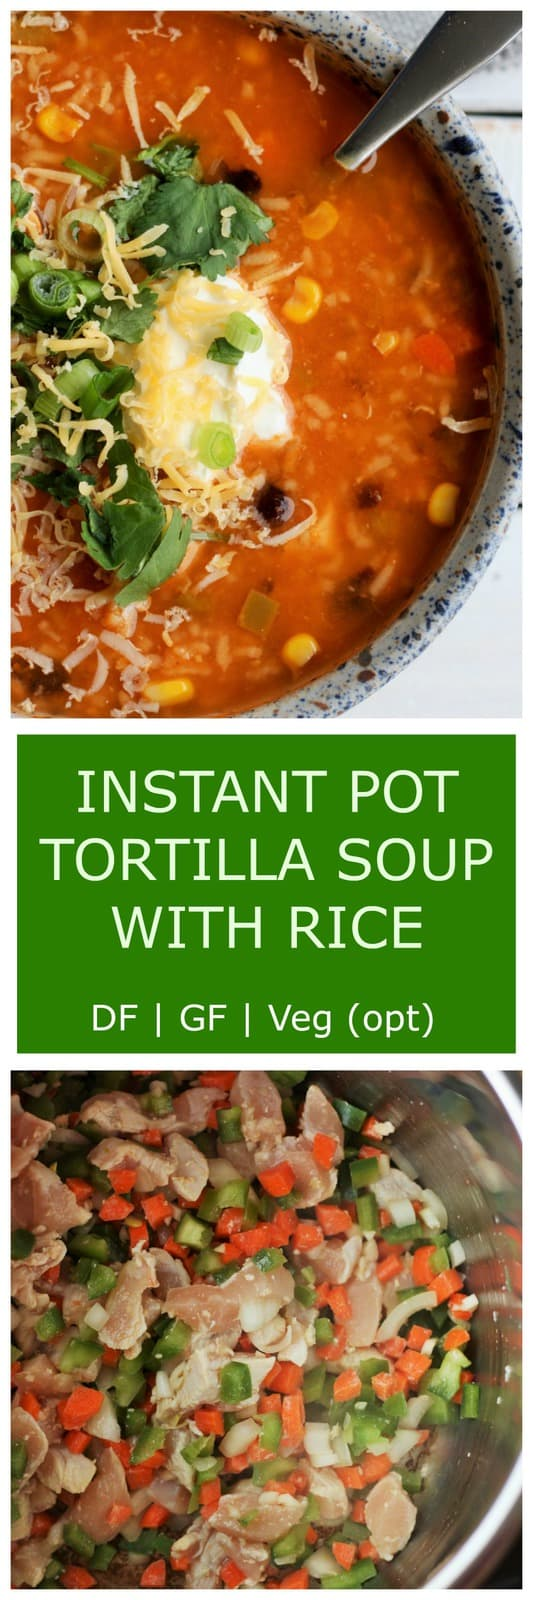 Healthy, easy, and delicious Instant Pot Tortilla Soup With Rice is the tastiest comfort food in under 30 minutes. Instant Pot, slow cooker, and stovetop instructions included.